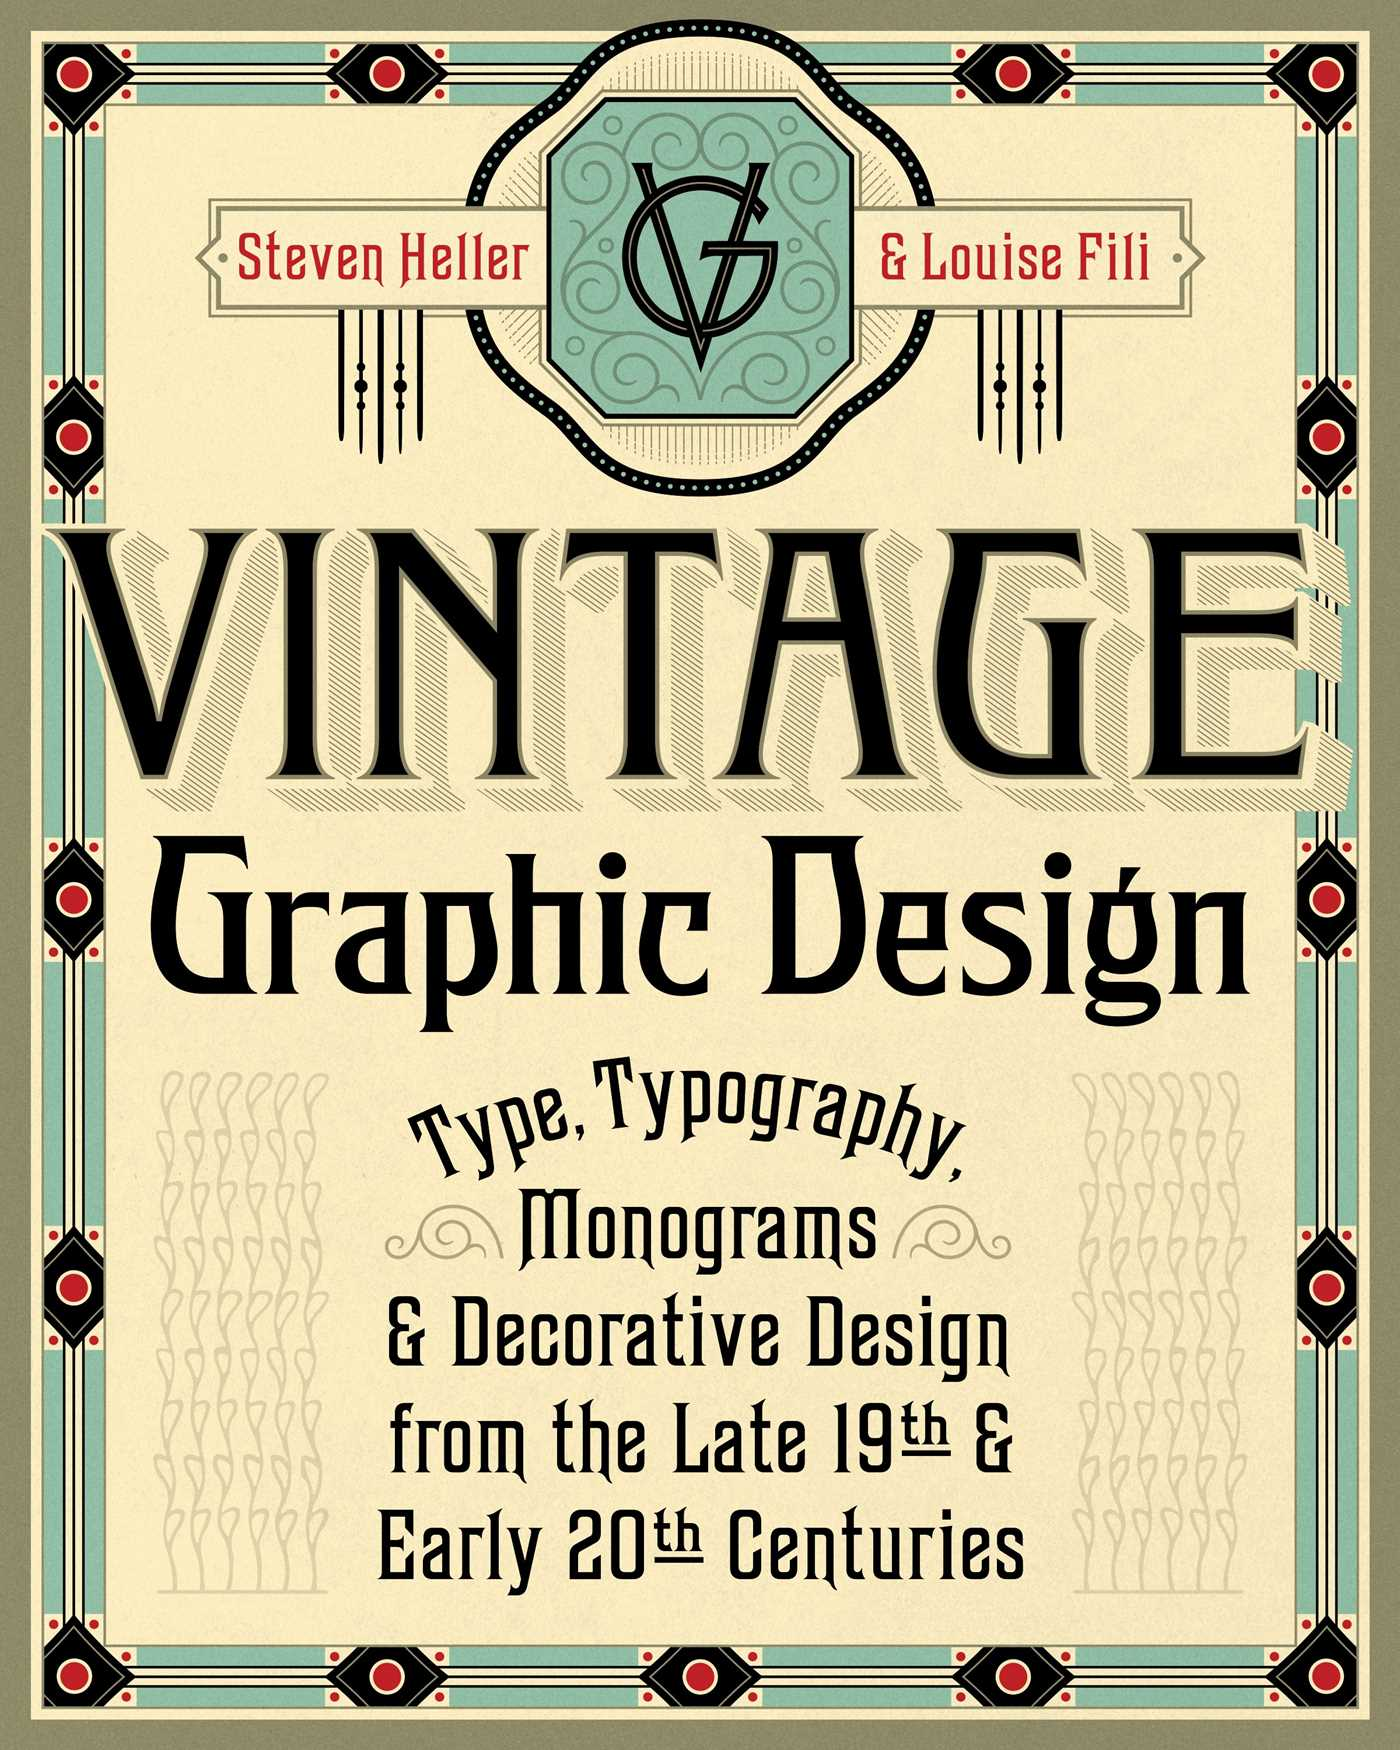 Vintage Graphic Design: Type, Typography, Monograms  Decorative Design from the Late 19th  Early 20th Centuries